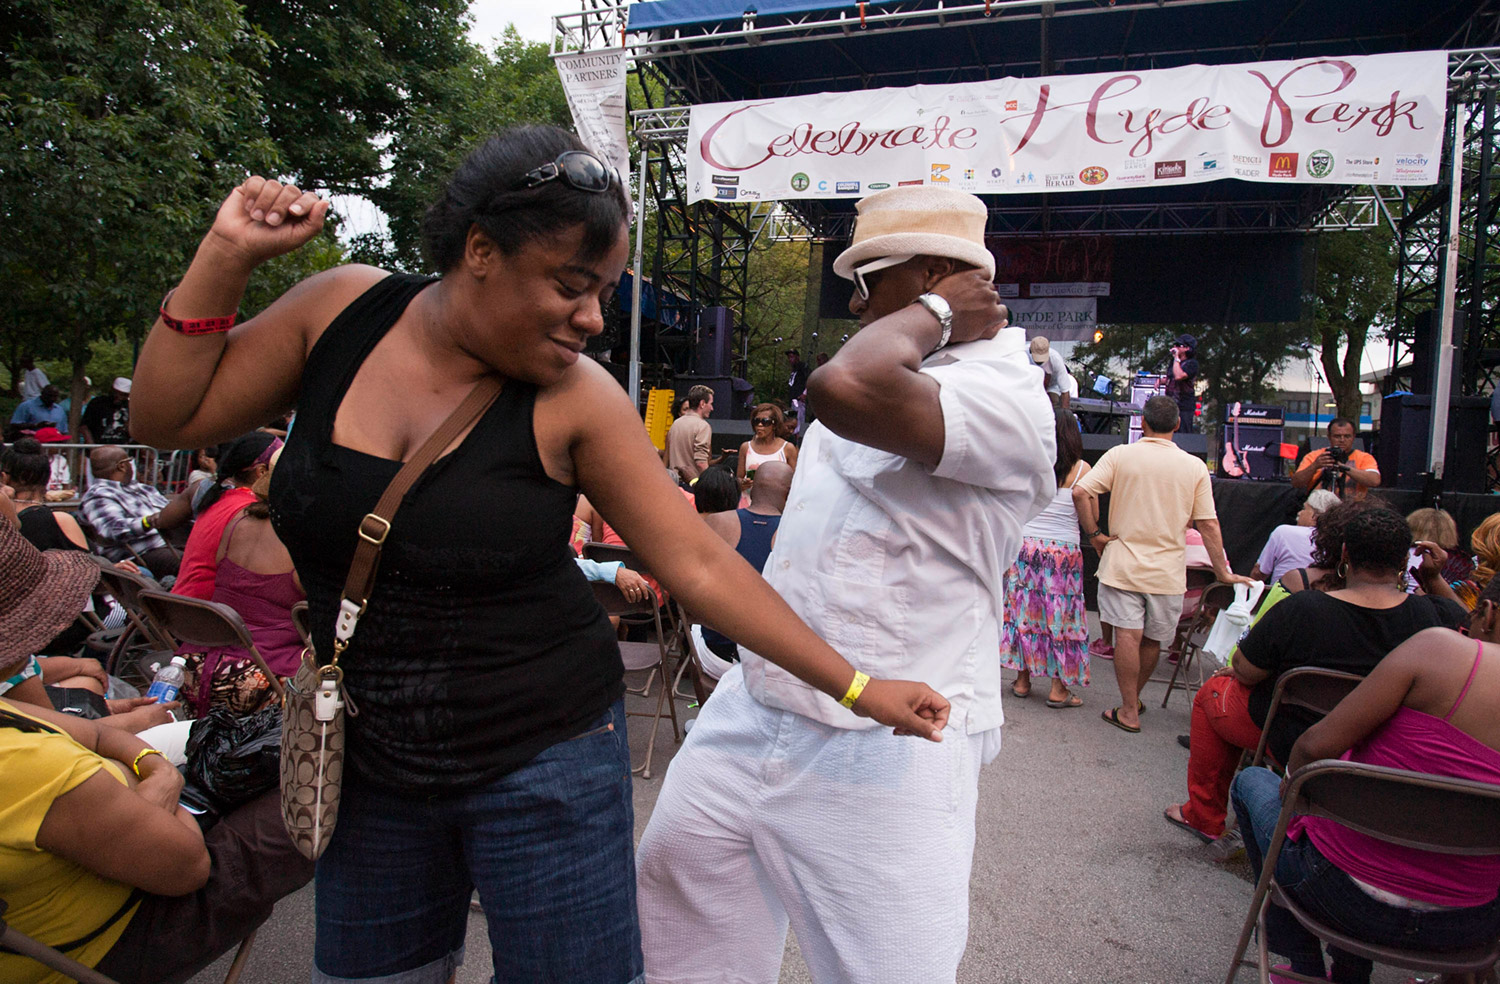 People dancing at an outdoor festival